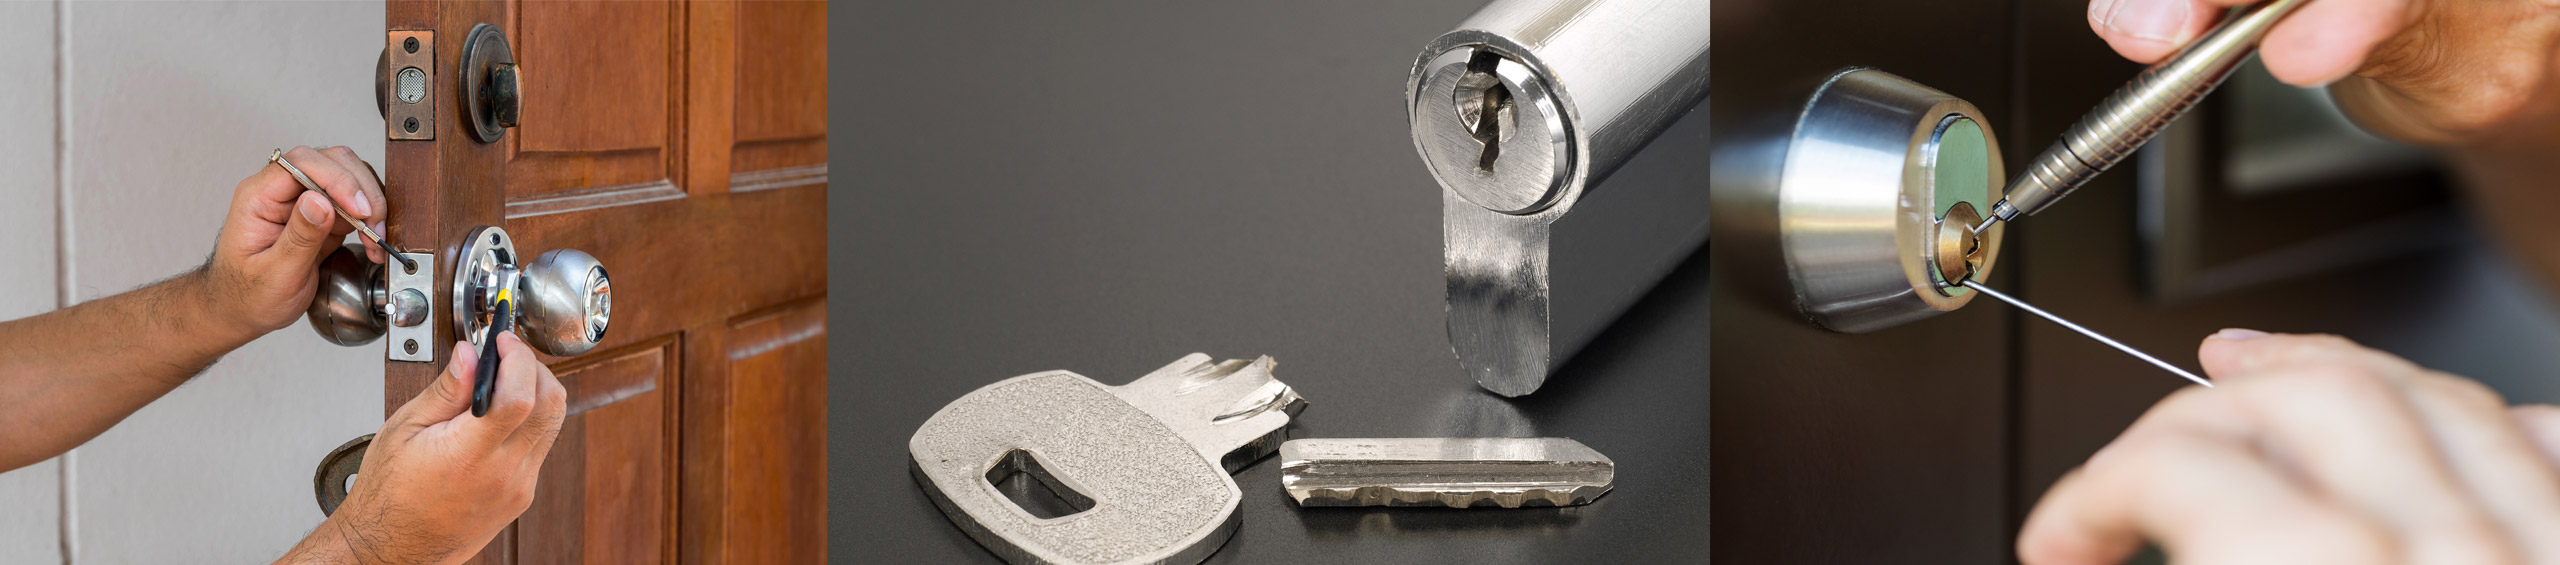 Residential Mobile Locksmith in Jeffersonville, Clarksville, Charlestown, Sellerbsy, New Albany, and Clark County